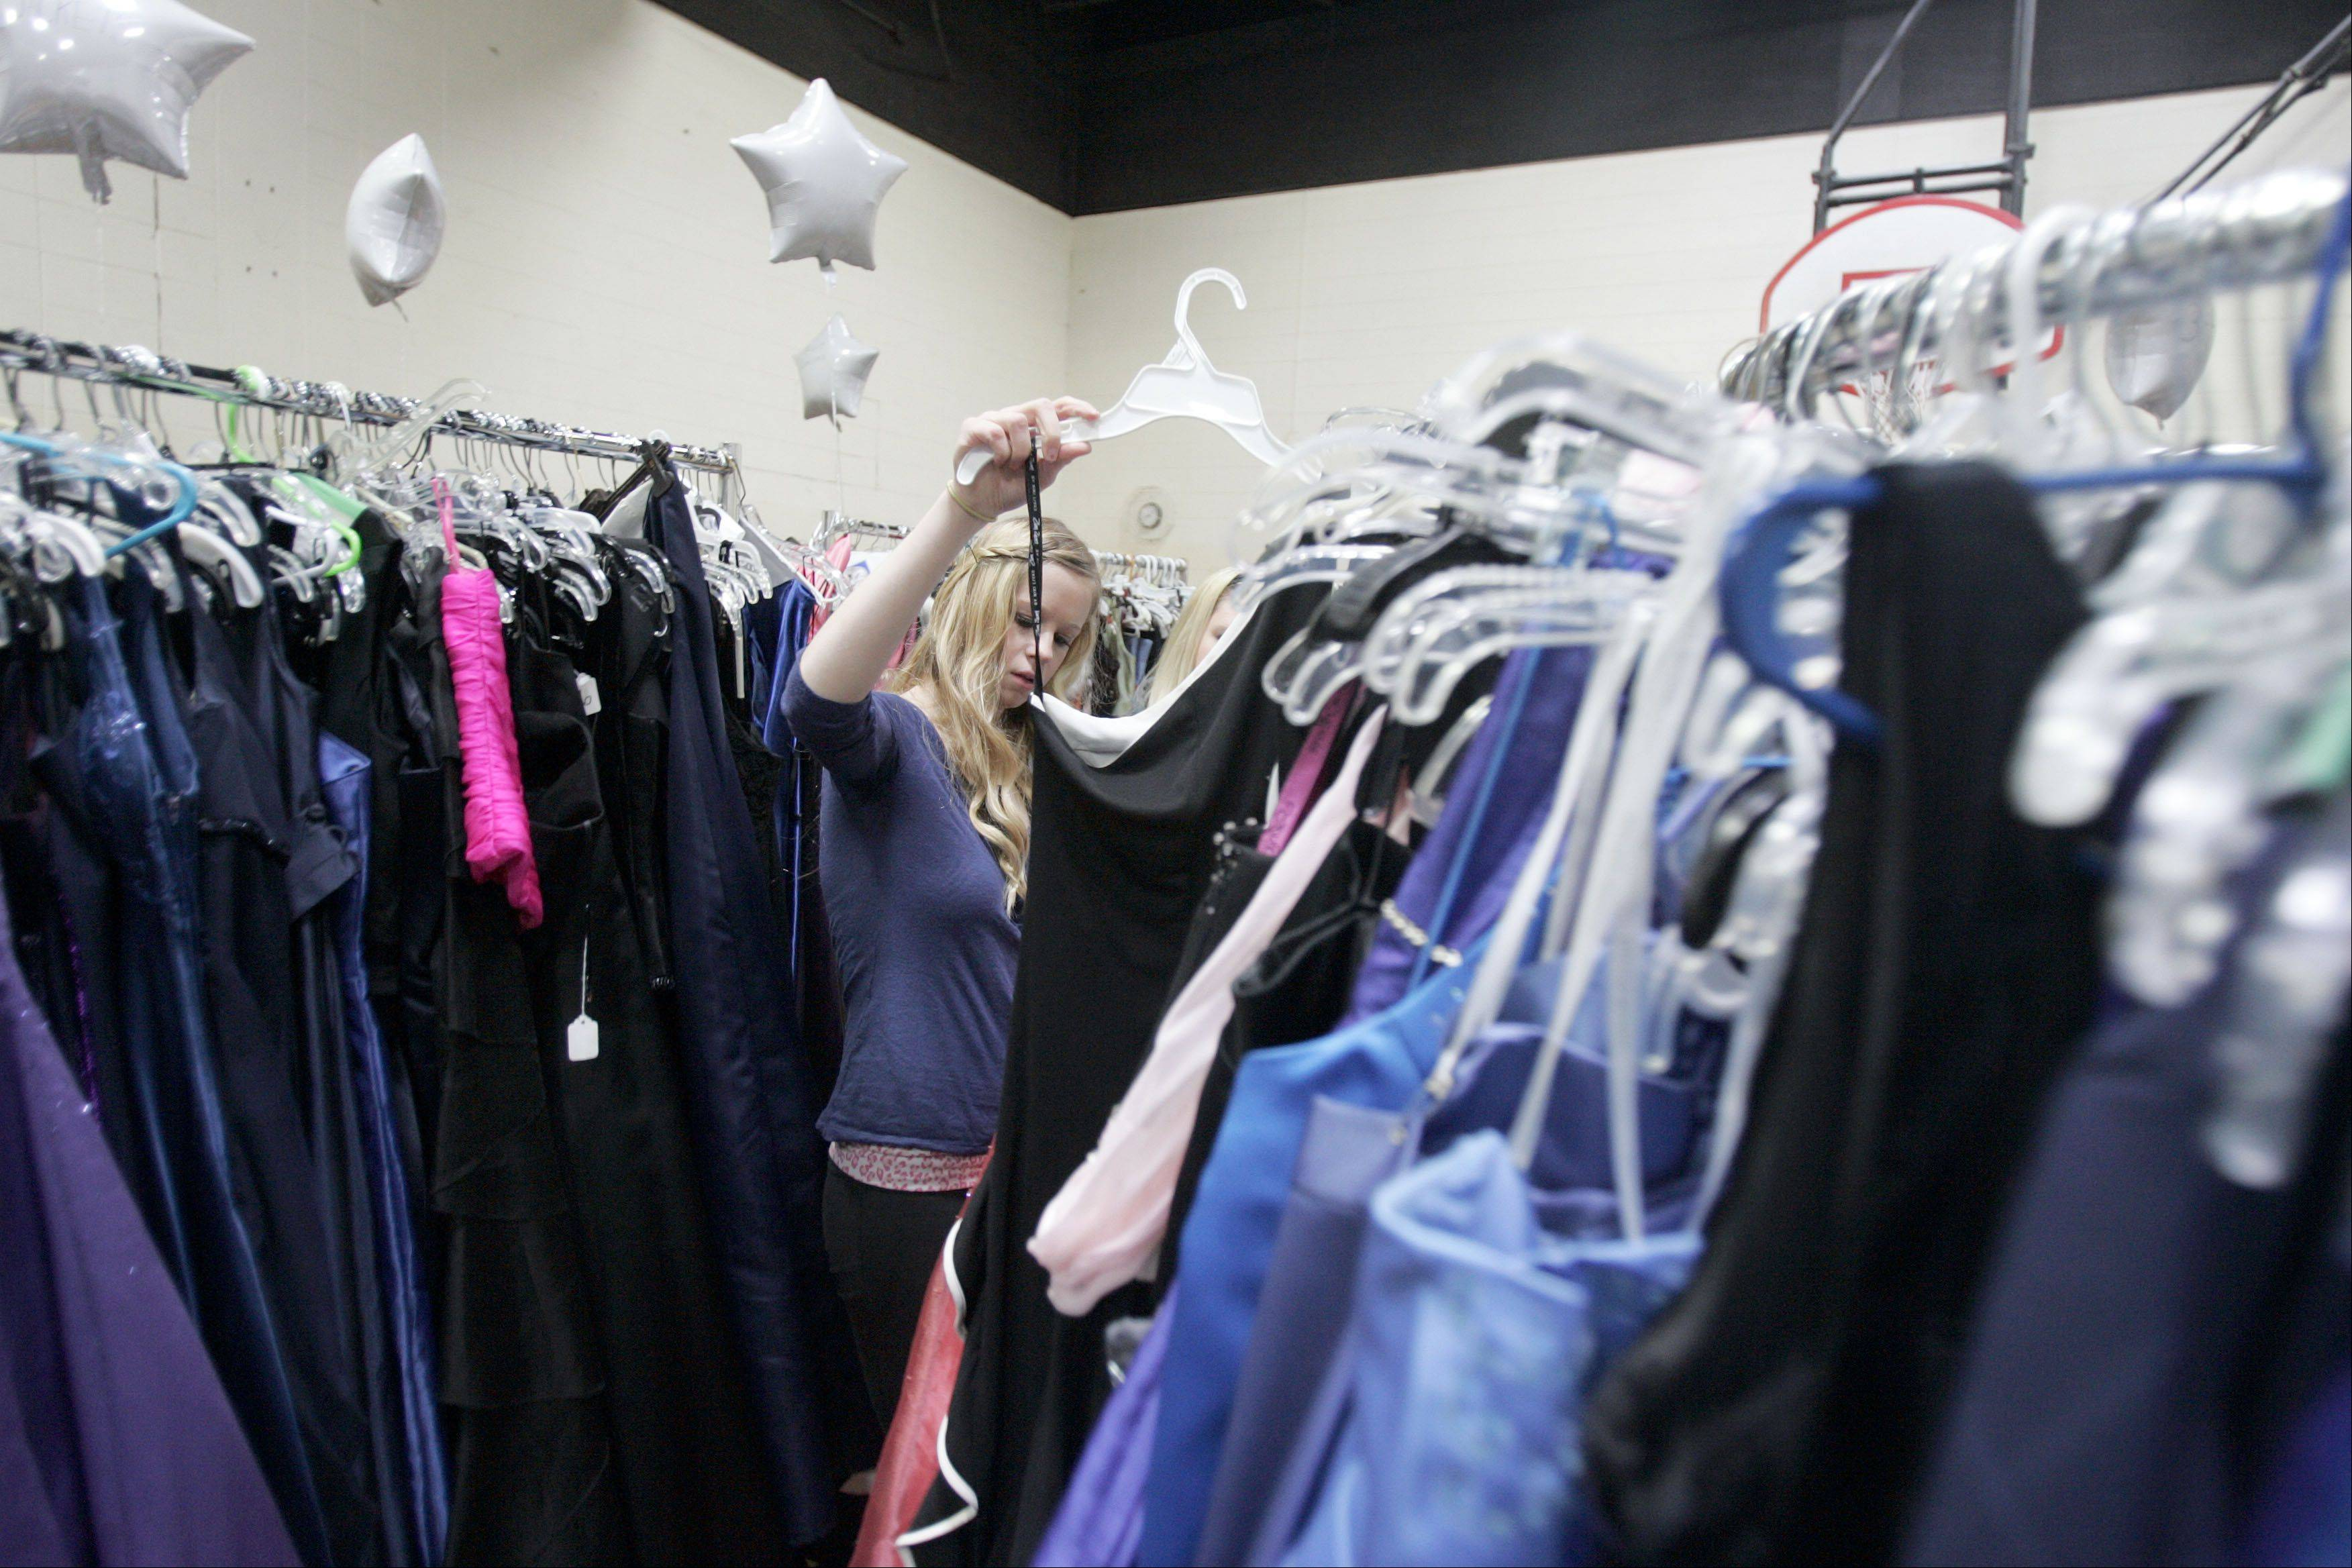 Seventeen-year-old Diana Pannell of St. Charles picks from more than 4,000 dresses during the annual Cinderella's Closet event Saturday at the YWCA in Elgin.